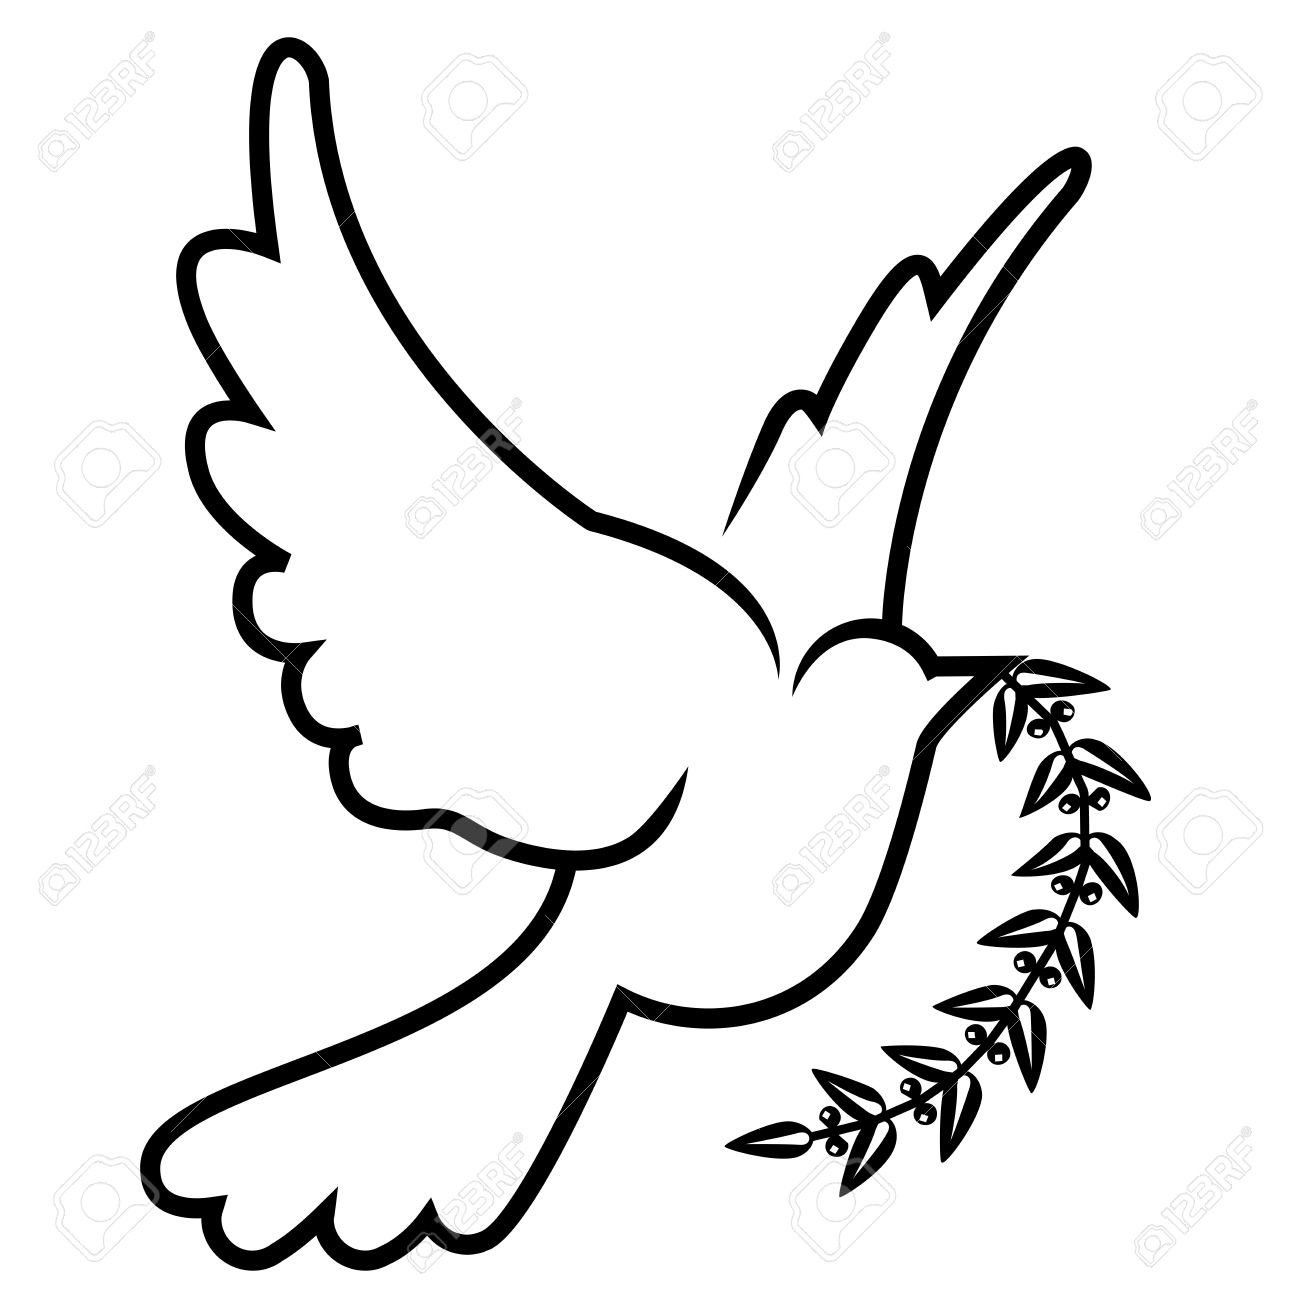 Vector Symbol Of Dove Olive Branch Royalty Free Cliparts Vectors And Stock Illustration Image 13320909